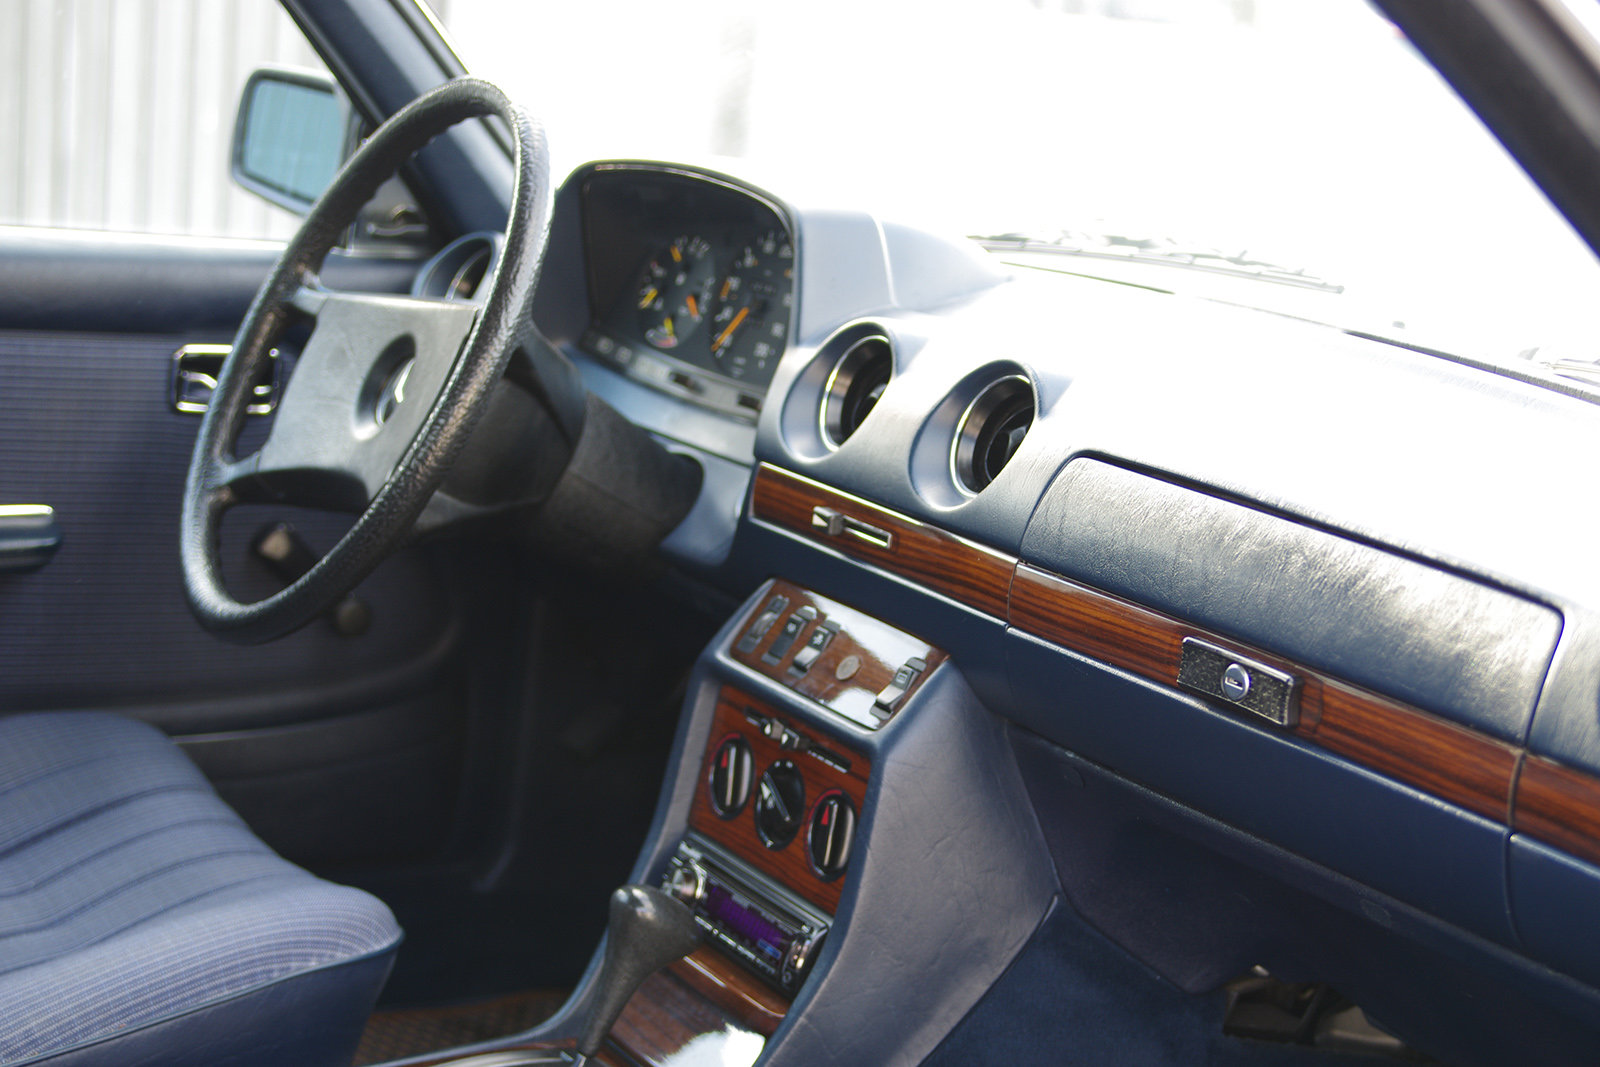 1983 Mercedes-Benz 230 CE - C123 - LHD - only 3 owners in 35 year SOLD (picture 4 of 6)